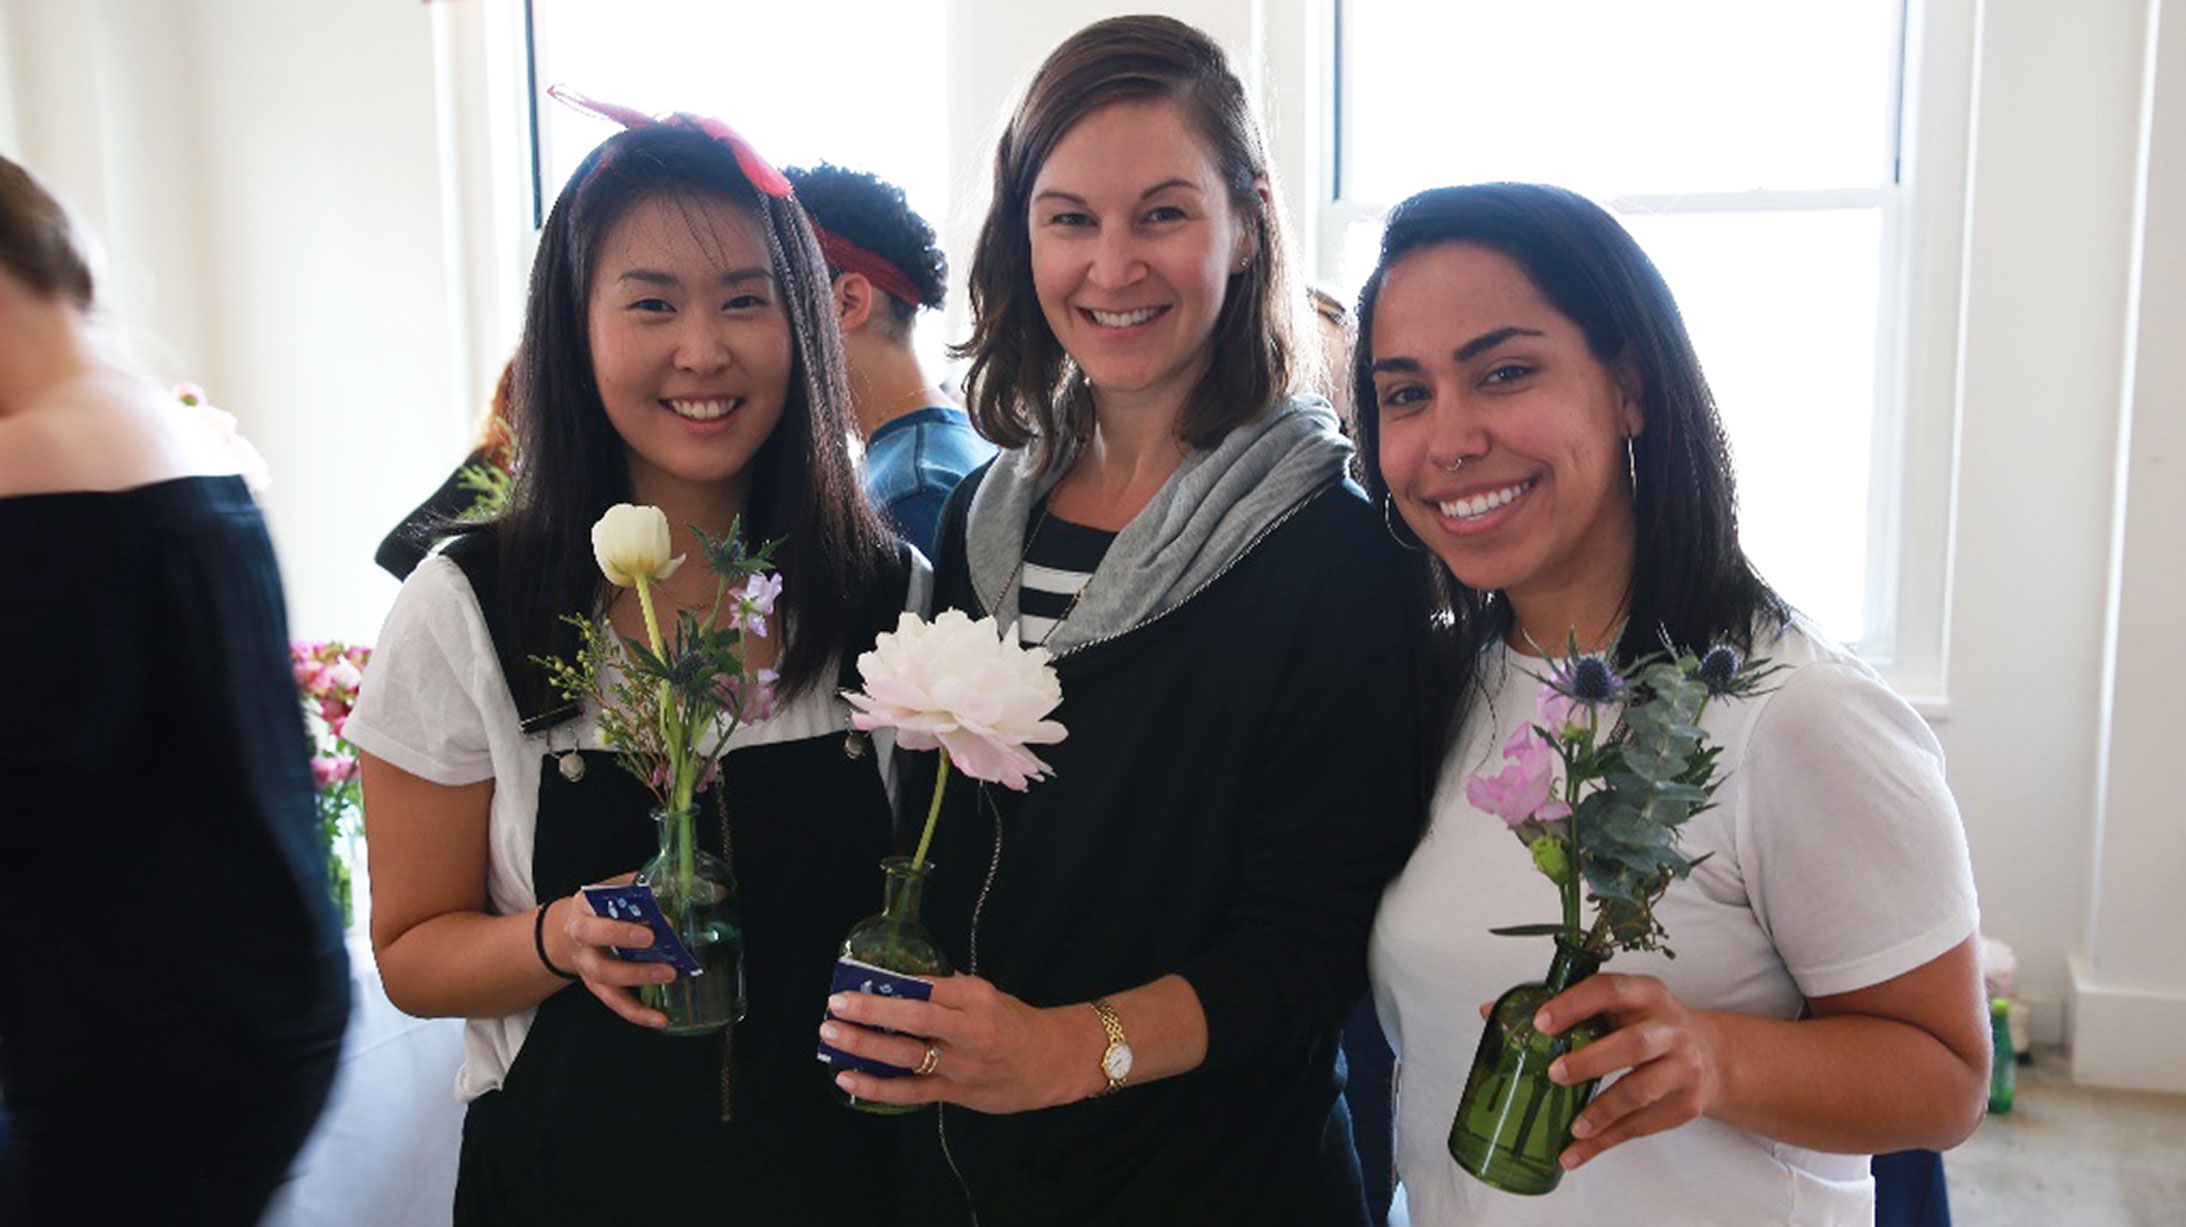 Employees Receiving Flowers for Mother's Day